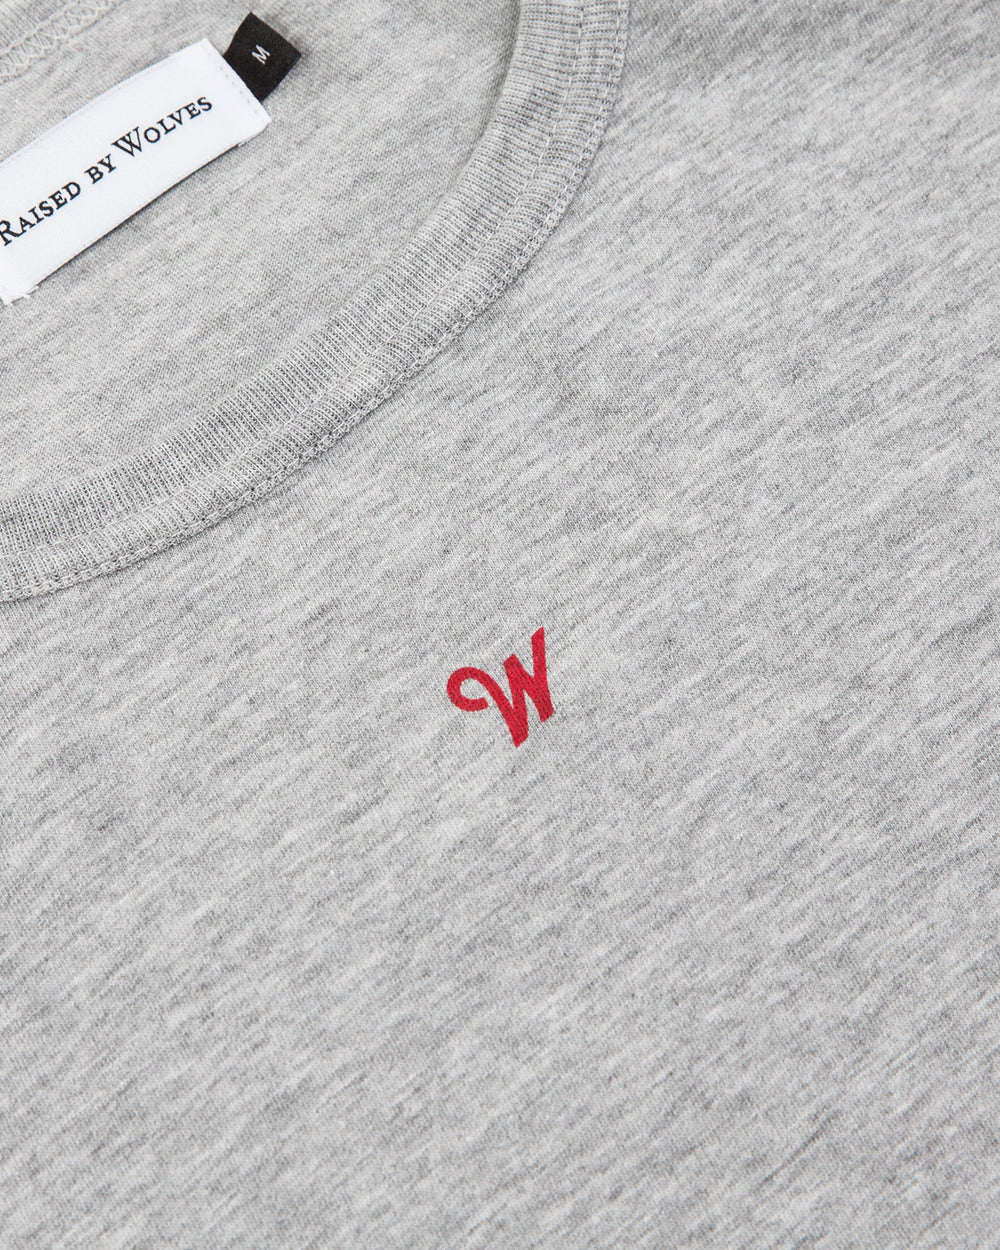 Raised by Wolves - Raines Warm Up Shirt (Heather Grey)